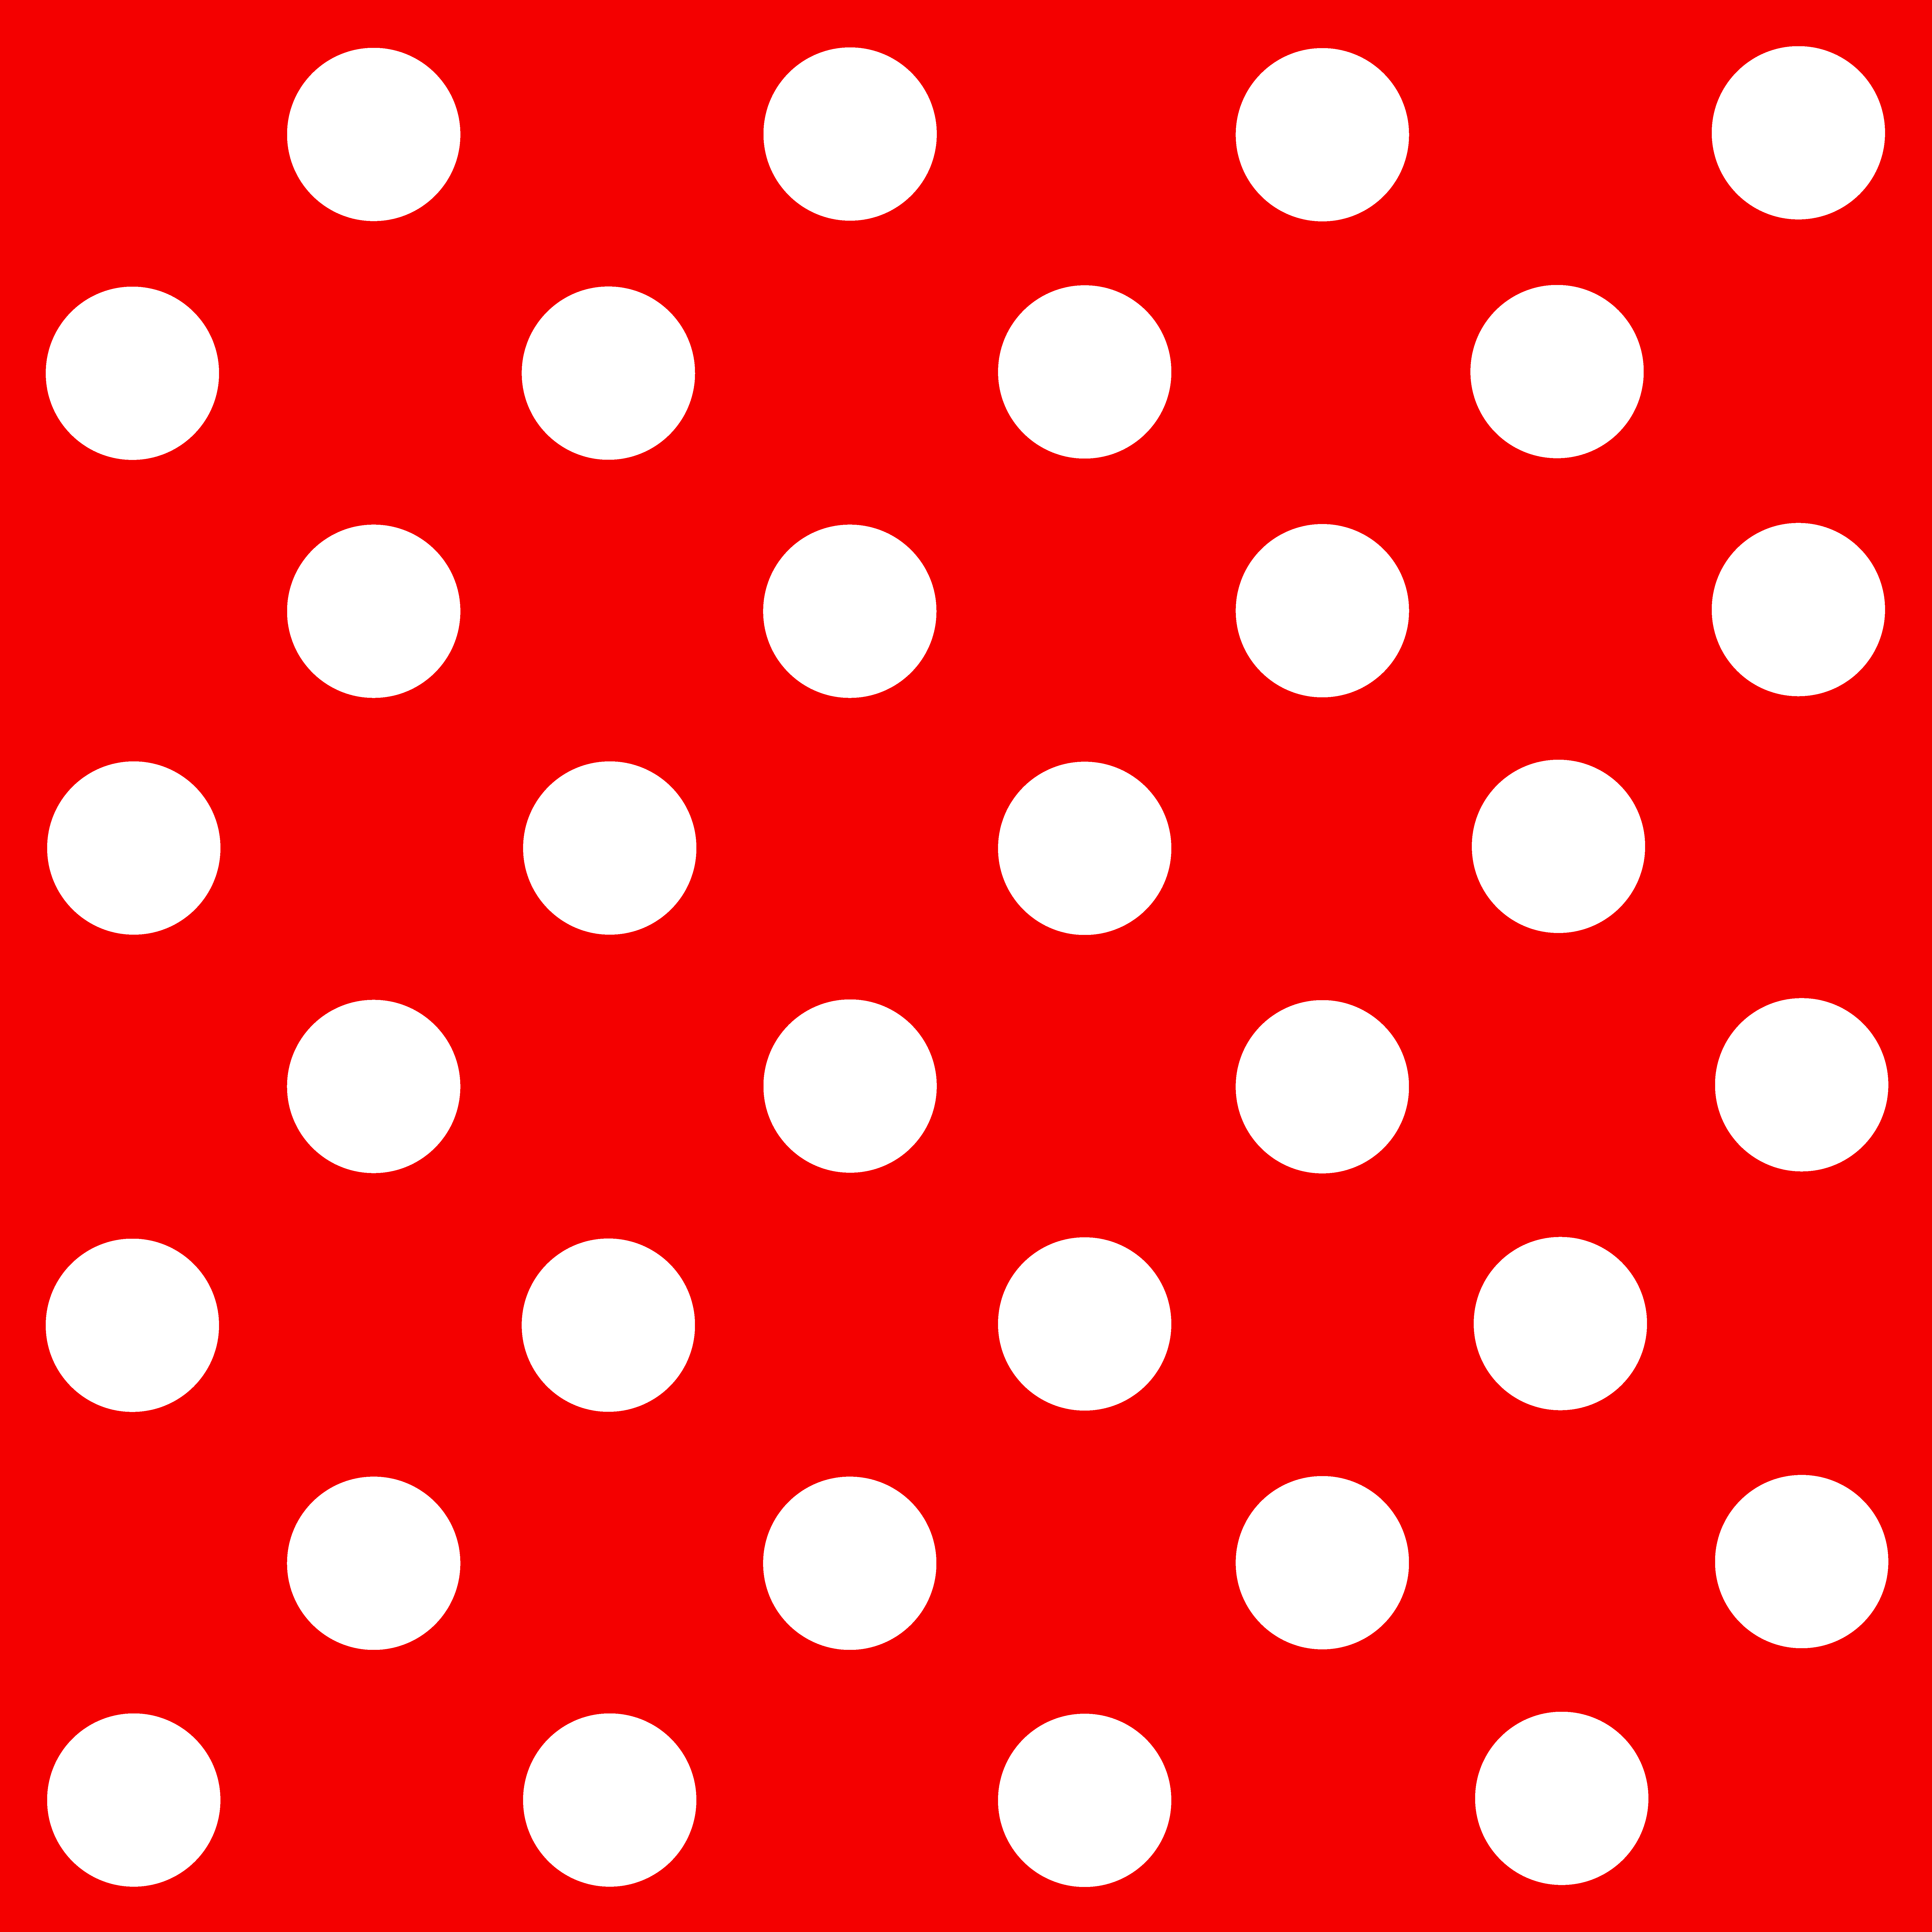 Pattern Dots Red White Clip Art - Sweet Clip Art banner transparent download